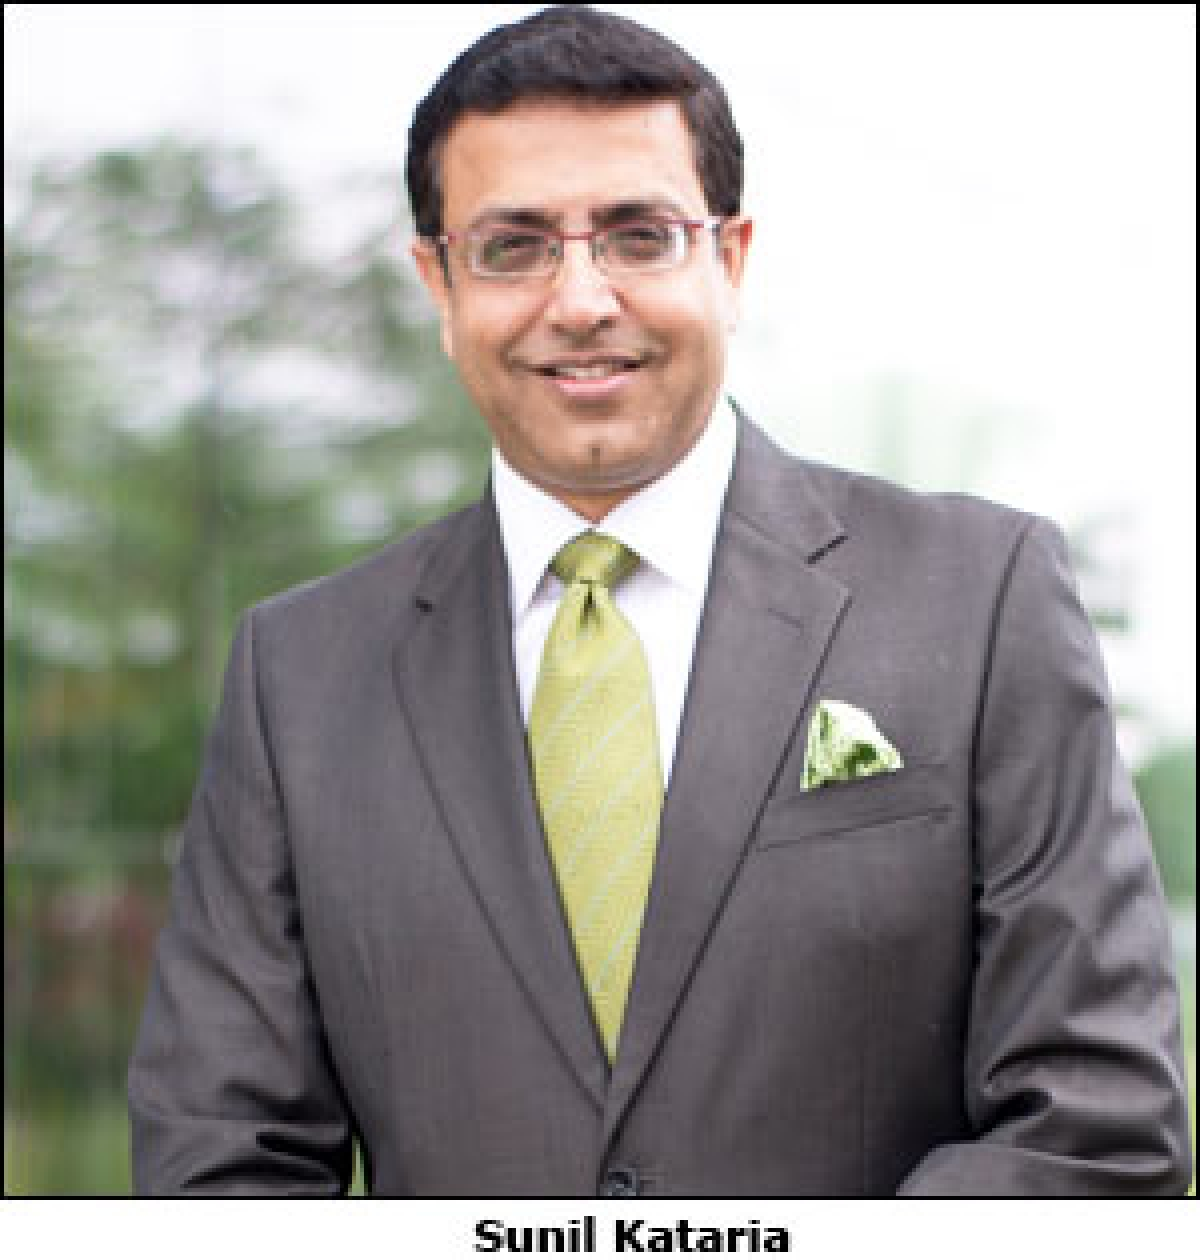 Indian Society of Advertisers elects Sunil Kataria as chairman